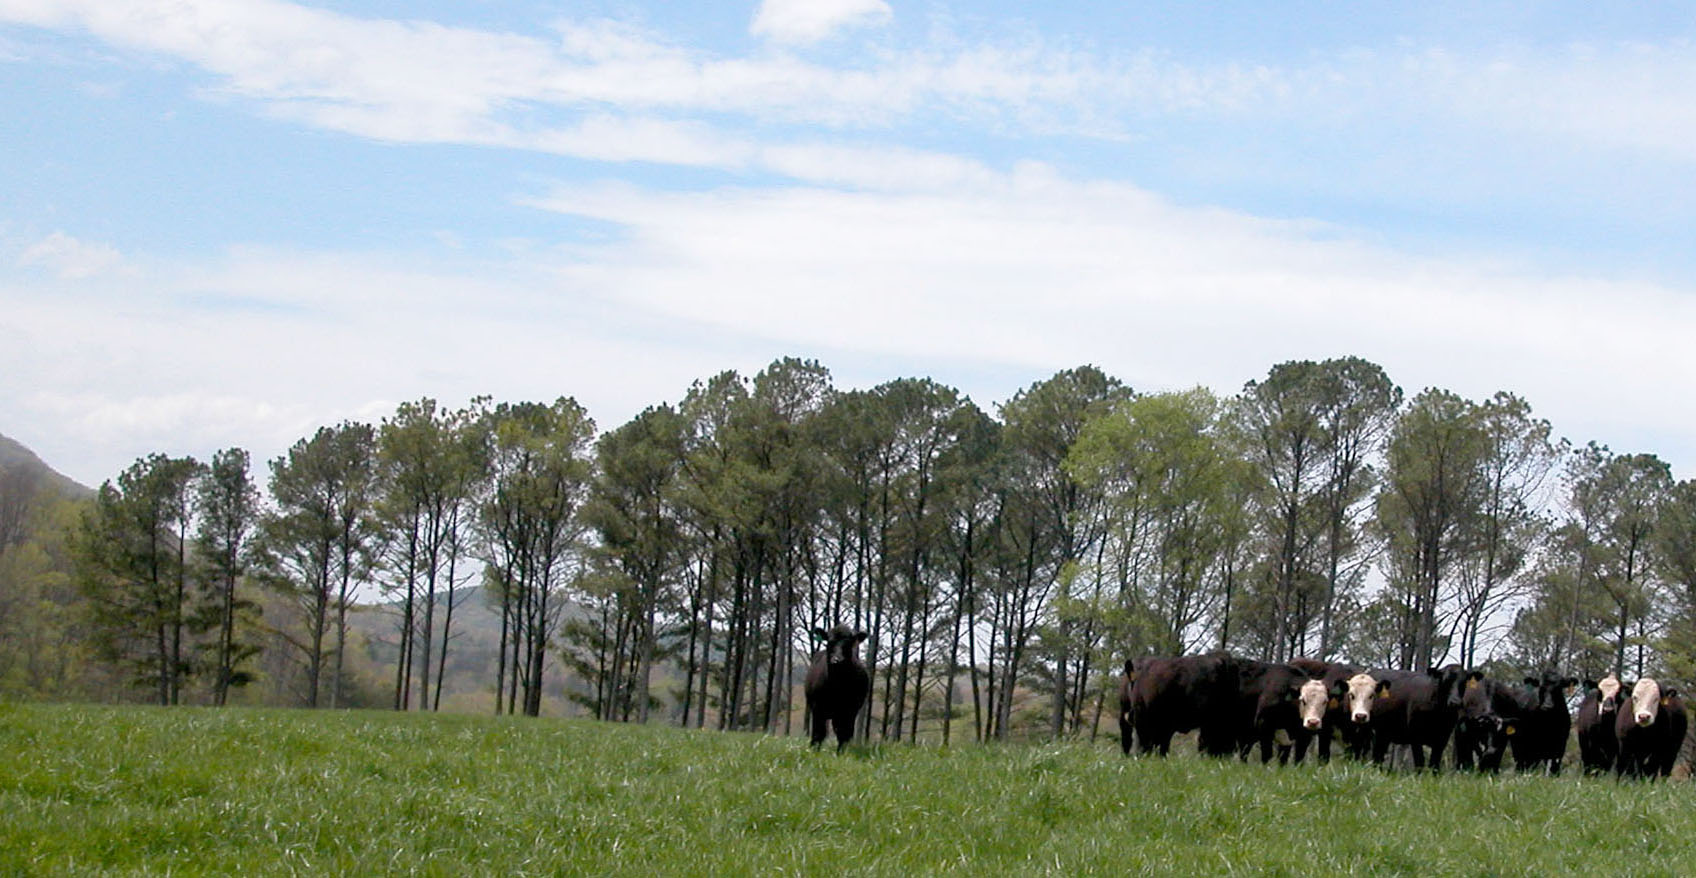 Beef cattle graze in a pasture at the University of Georgia Mountain Research and Education Center in Blairsville, Ga.